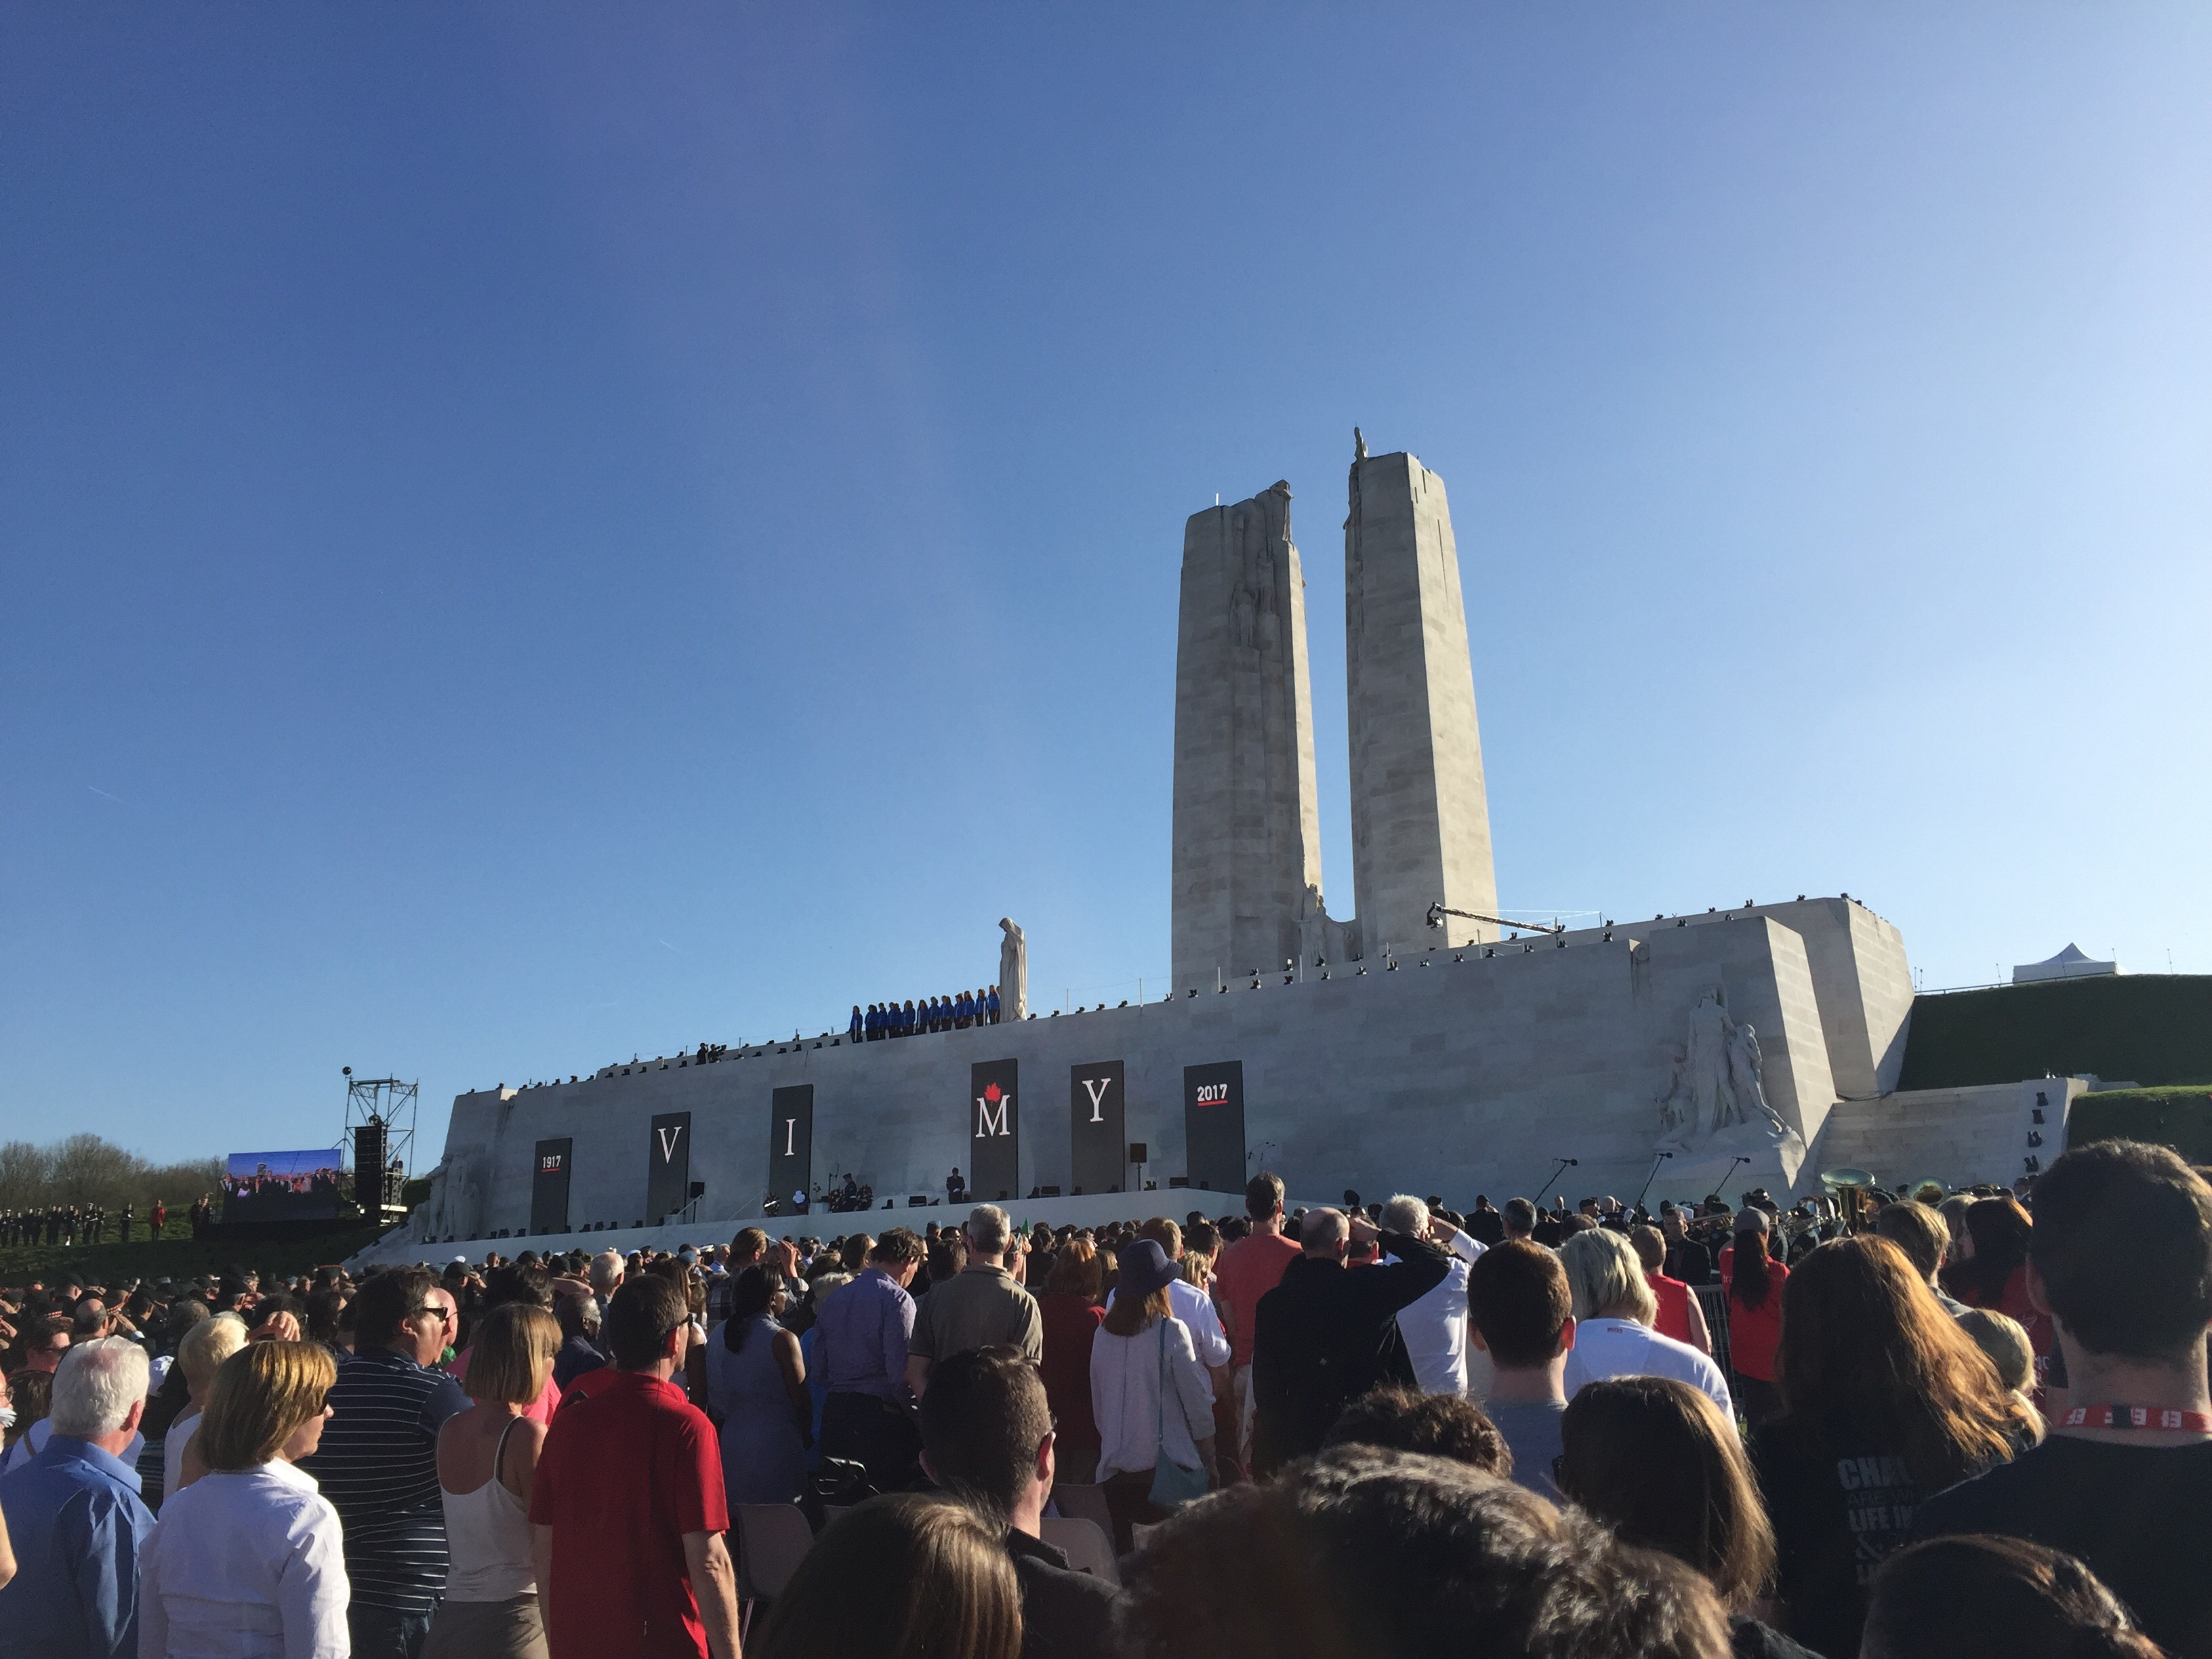 Thousands gathered in France to commemorate the 100th anniversary of the Battle of Vimy Ridge.